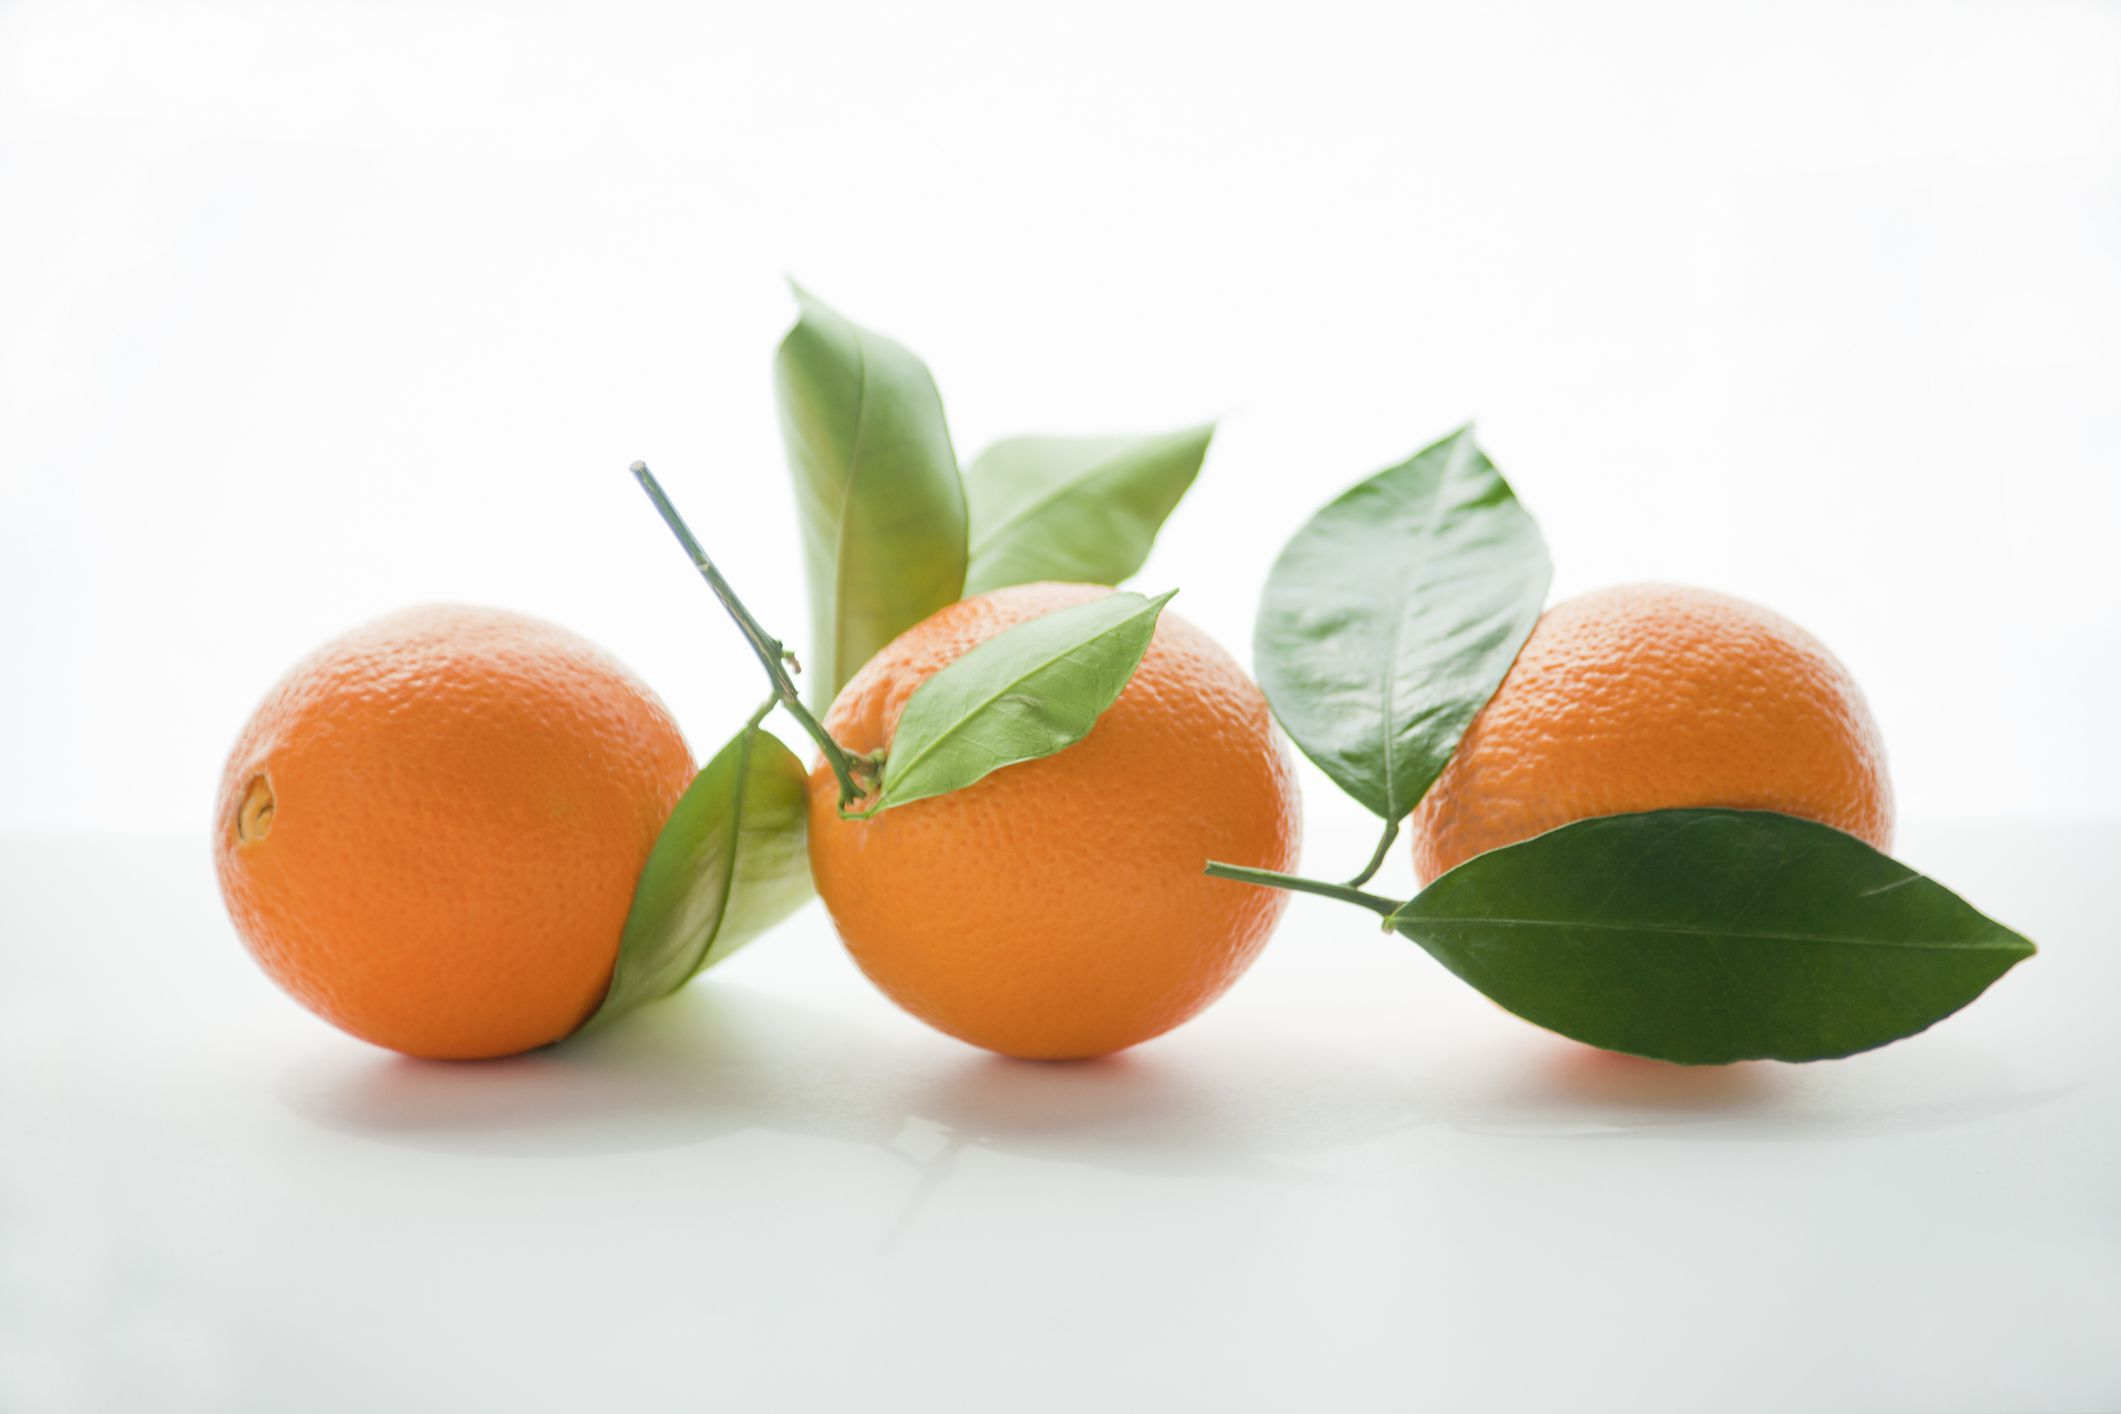 Navel oranges with leaves